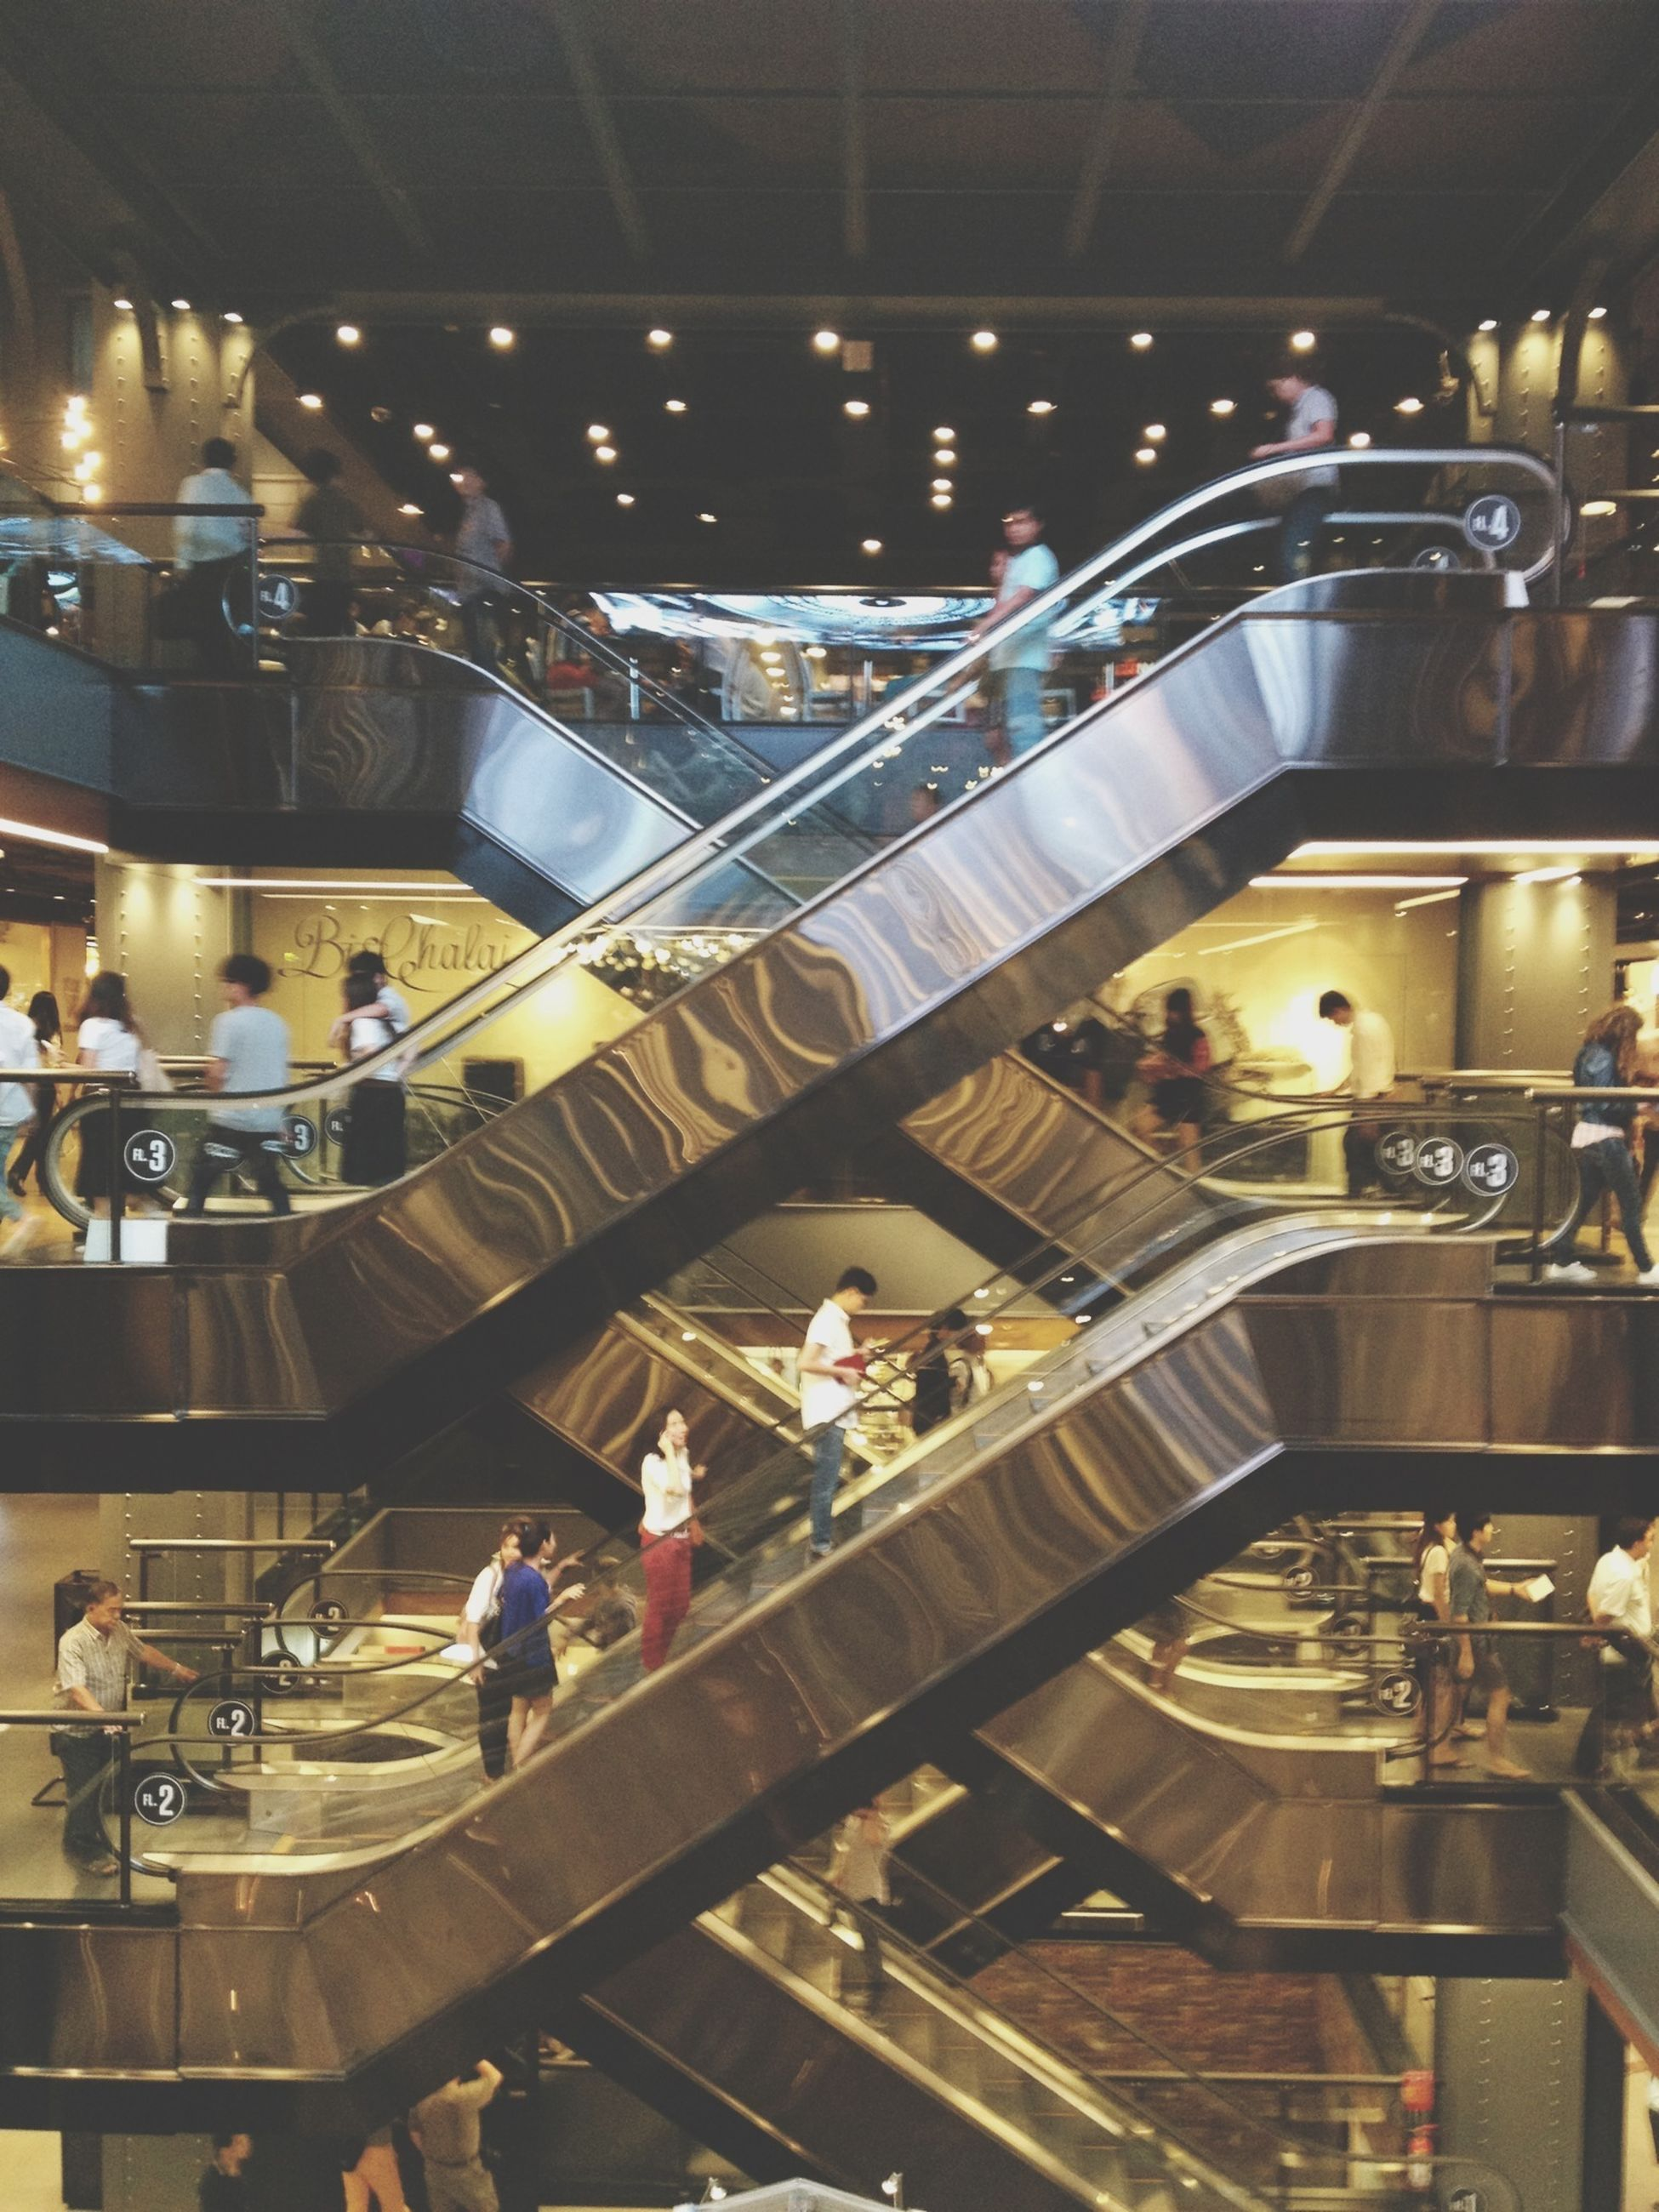 indoors, ceiling, illuminated, men, architecture, built structure, person, large group of people, escalator, steps and staircases, railroad station, incidental people, steps, lifestyles, staircase, high angle view, subway station, leisure activity, travel